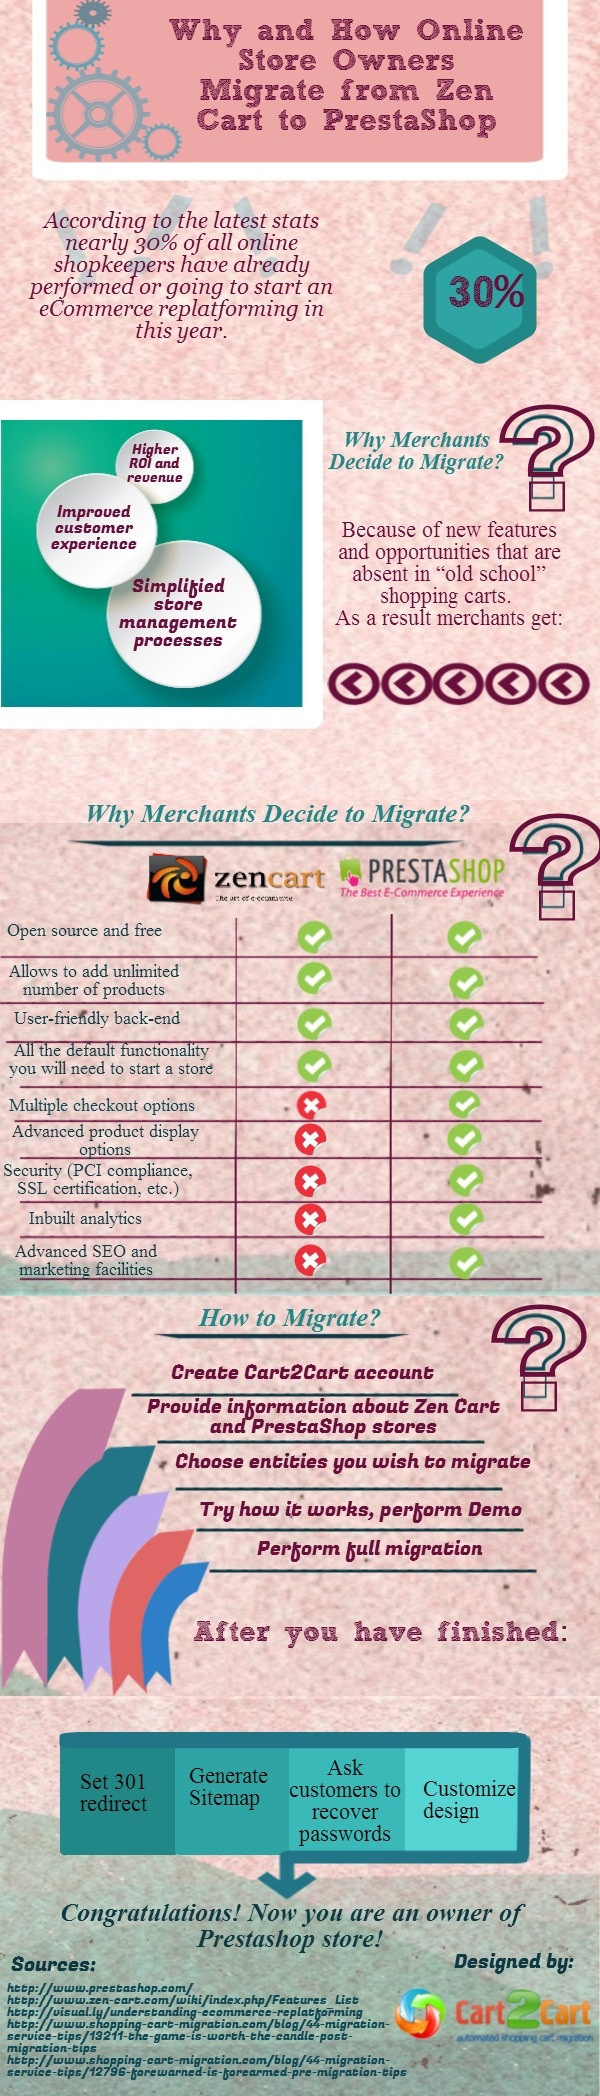 Why and How Online Store Owners Migrate from Zen Cart to PrestaShop